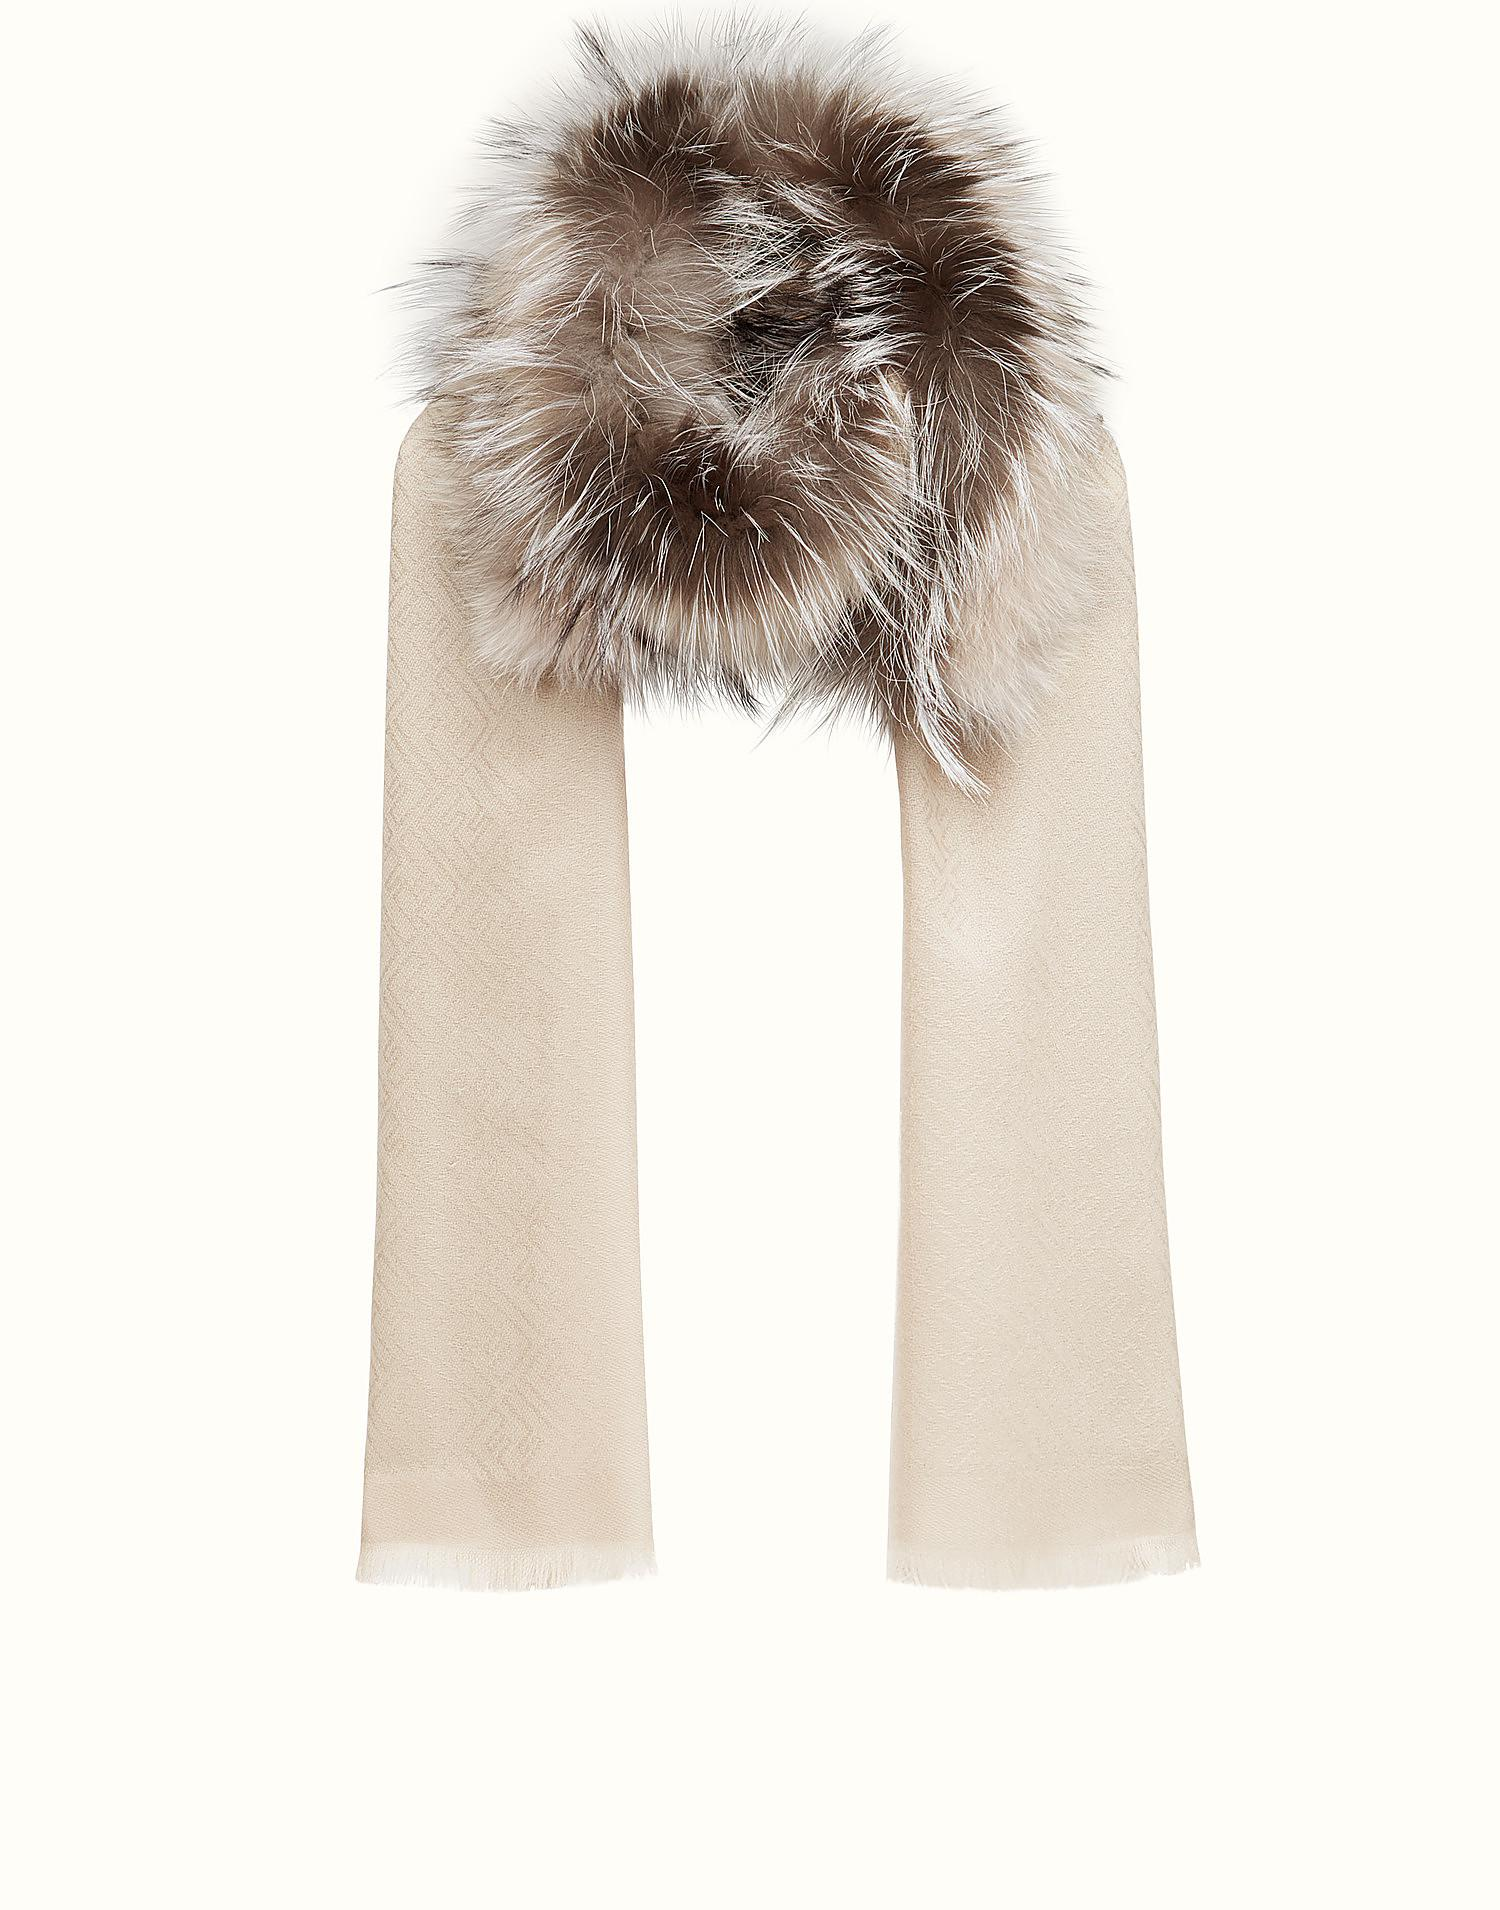 Touch Of Fur stole - Brown Fendi Sale Low Cost g7v7iTIA